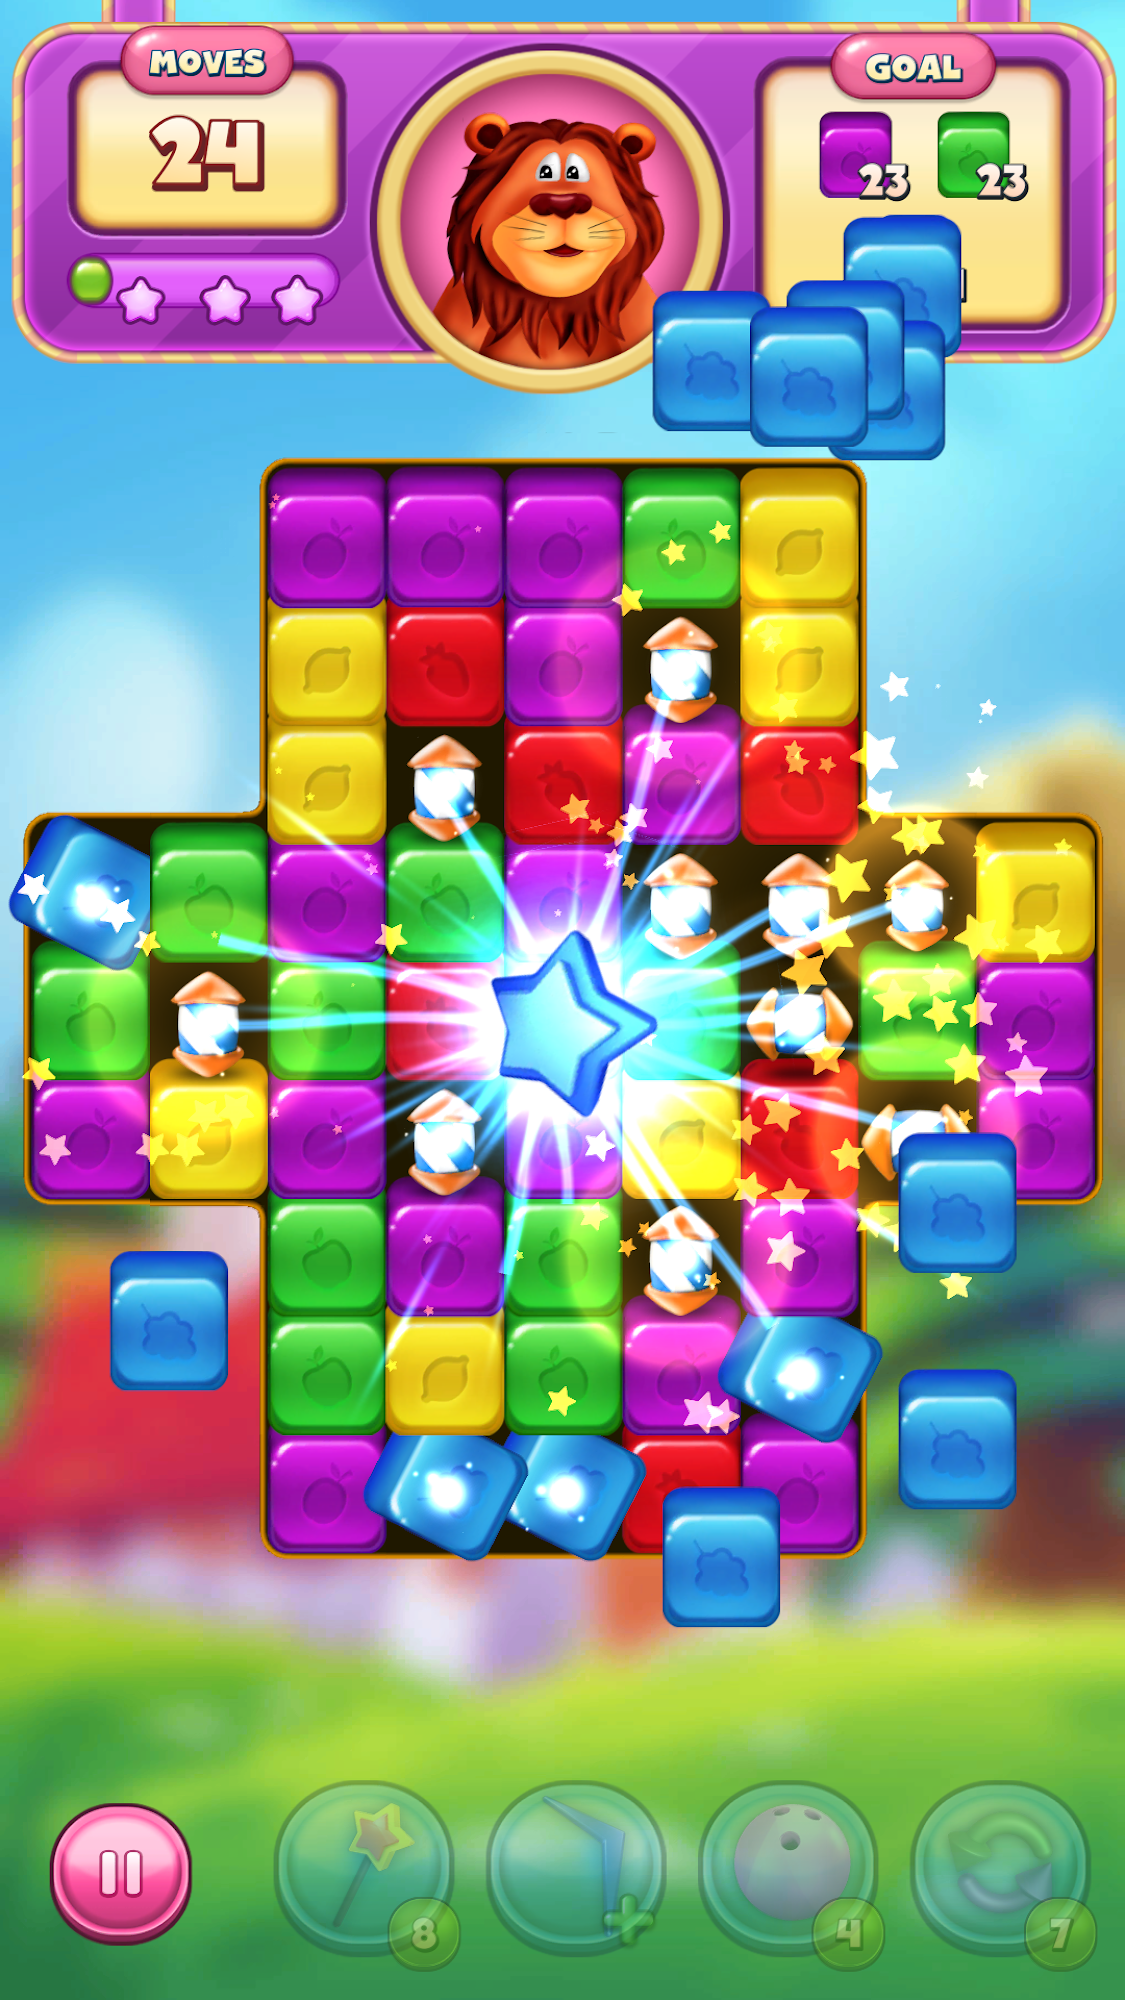 Cartoon Crush: Blast 3 Matching Games Toon Puzzle for Android